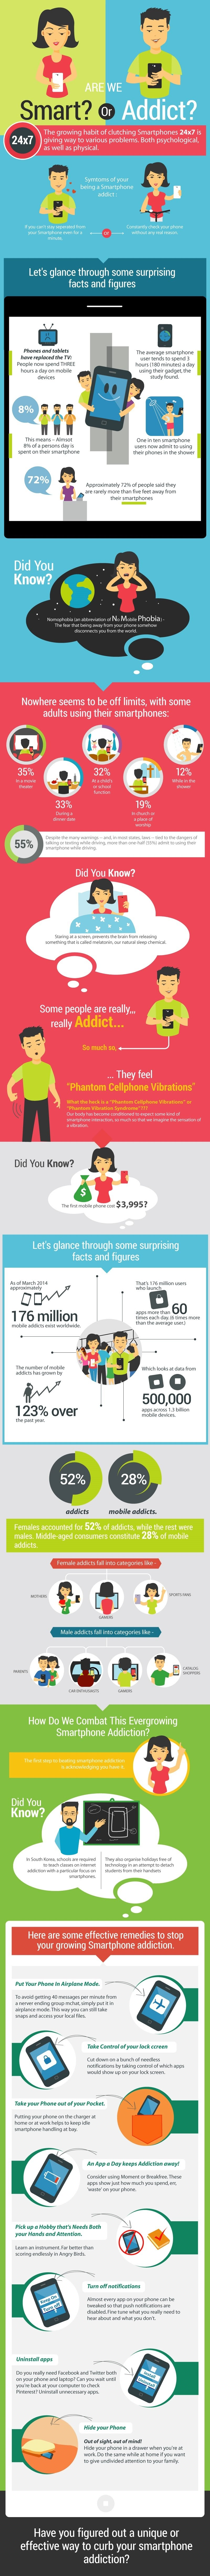 Are We Smart Or Addict? - #infographic